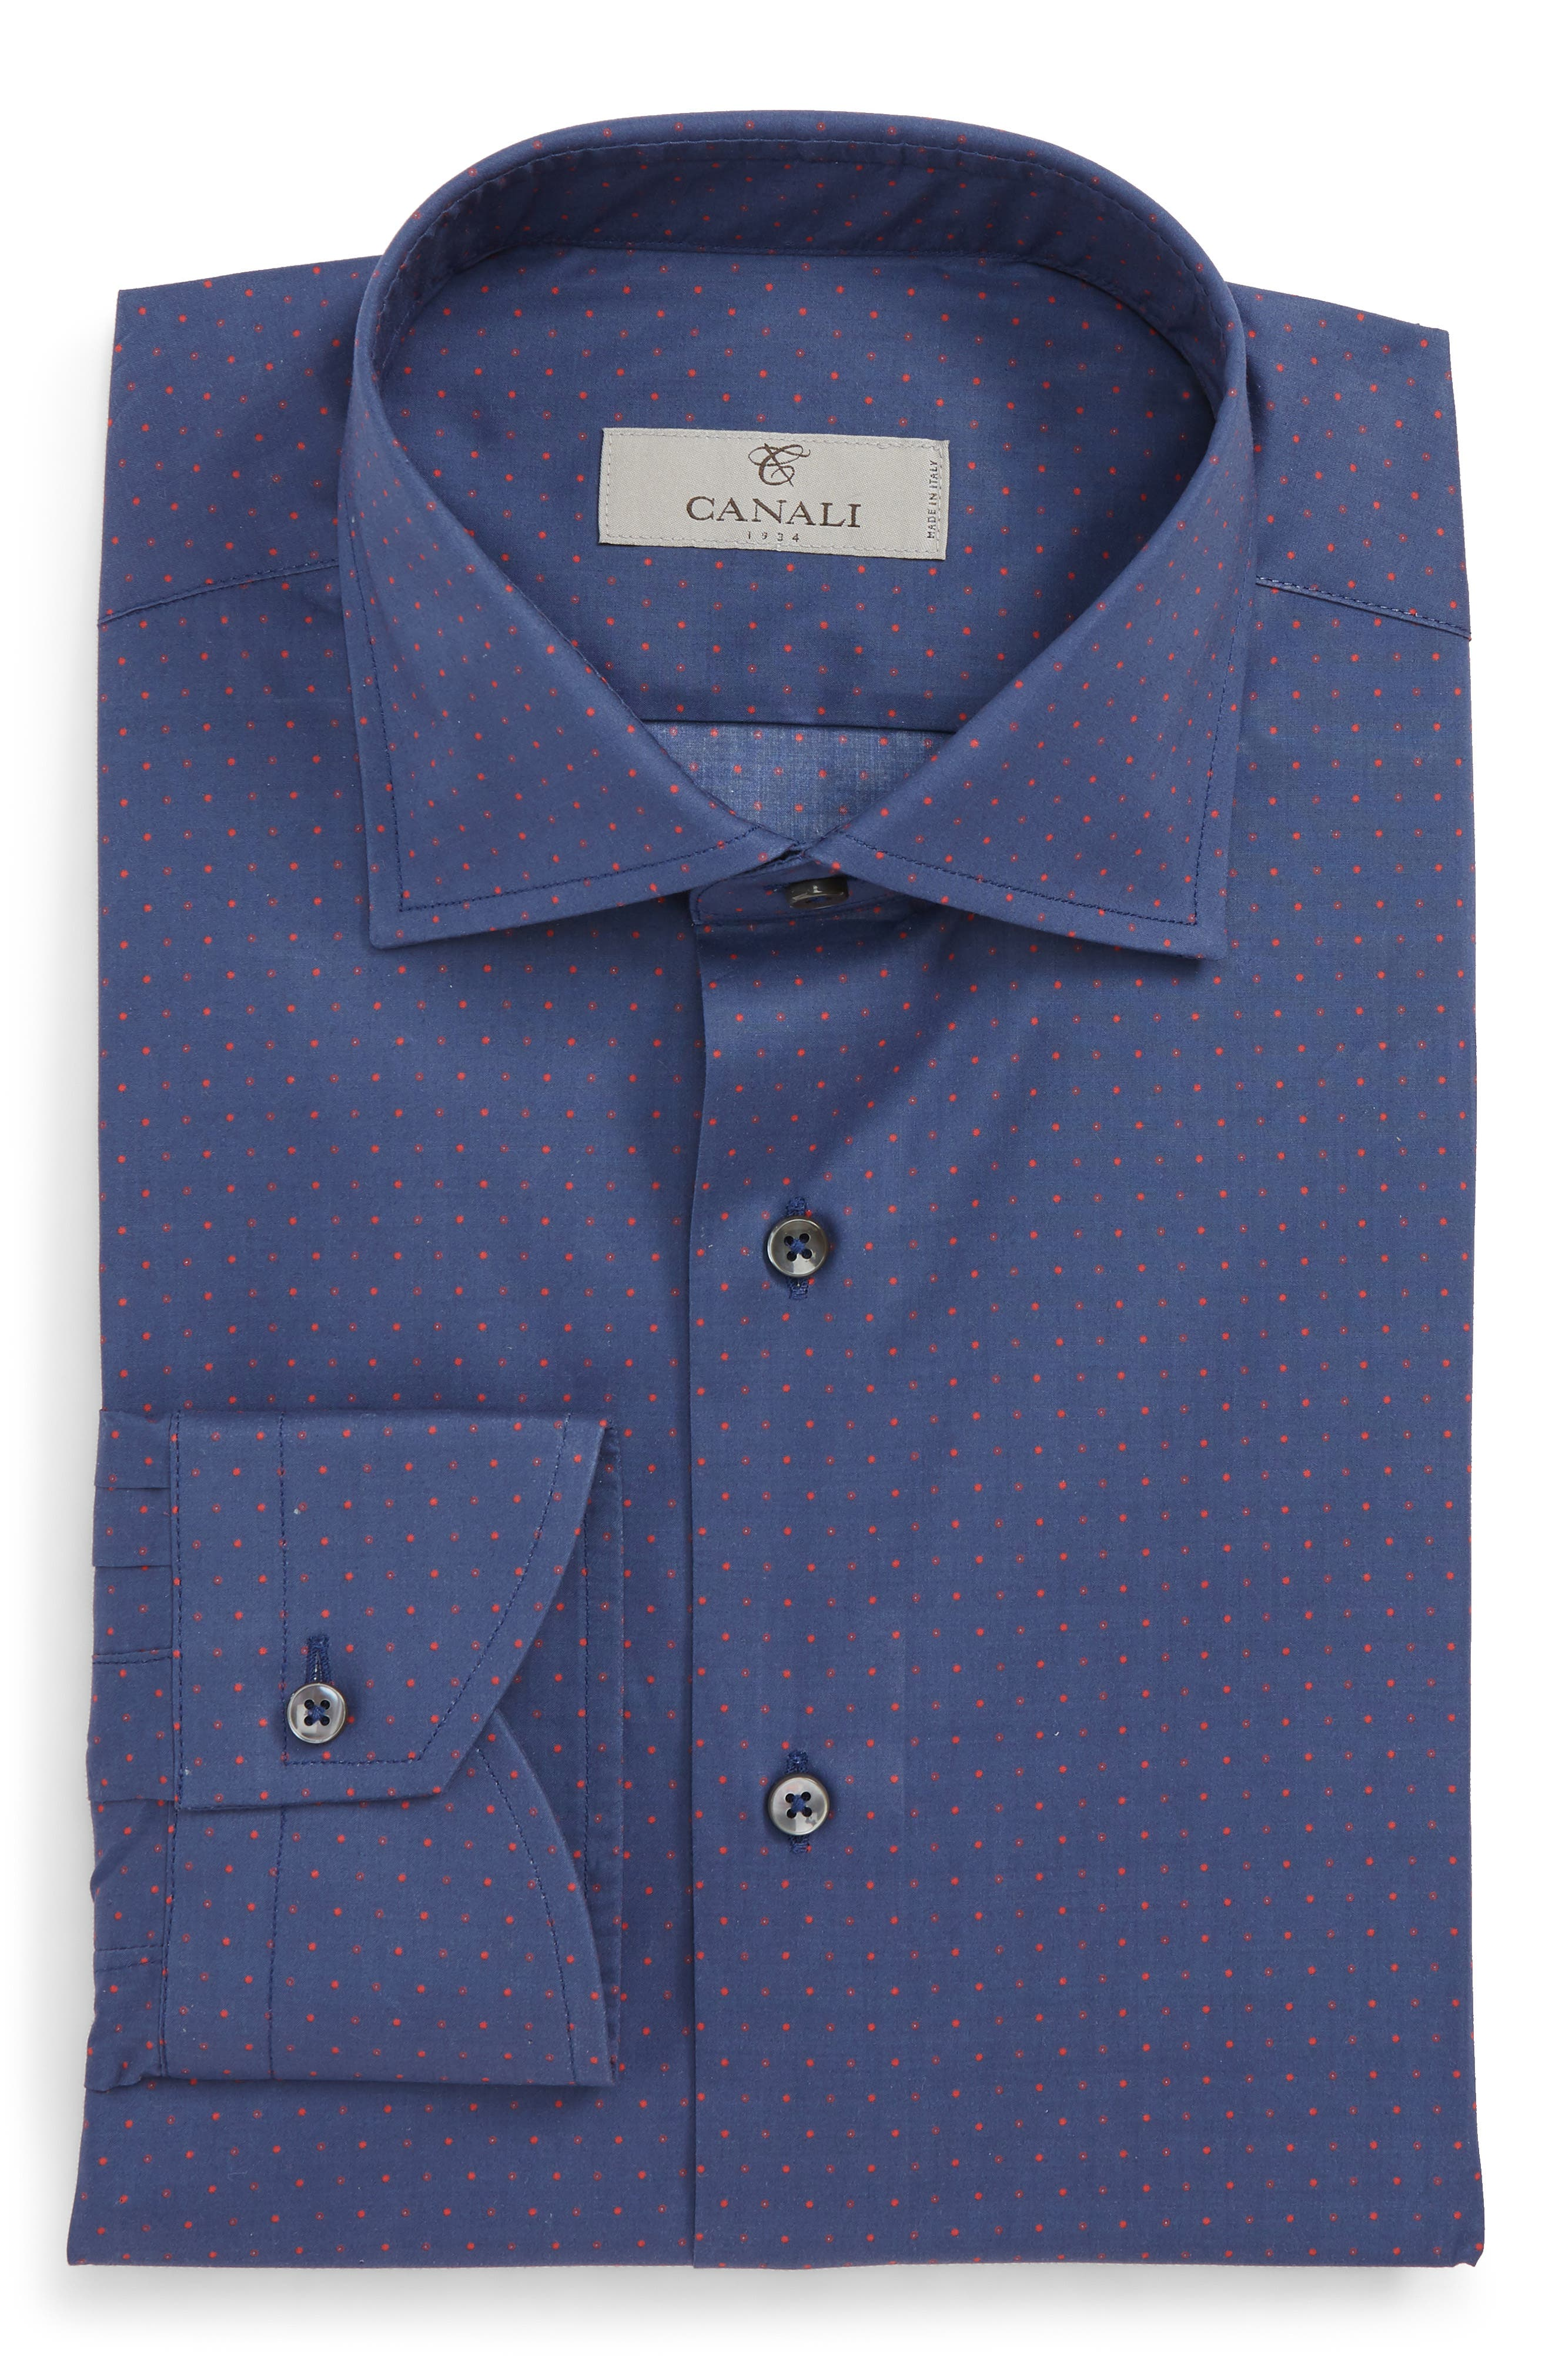 Regular Fit Dot Dress Shirt,                             Alternate thumbnail 6, color,                             DARK BLUE